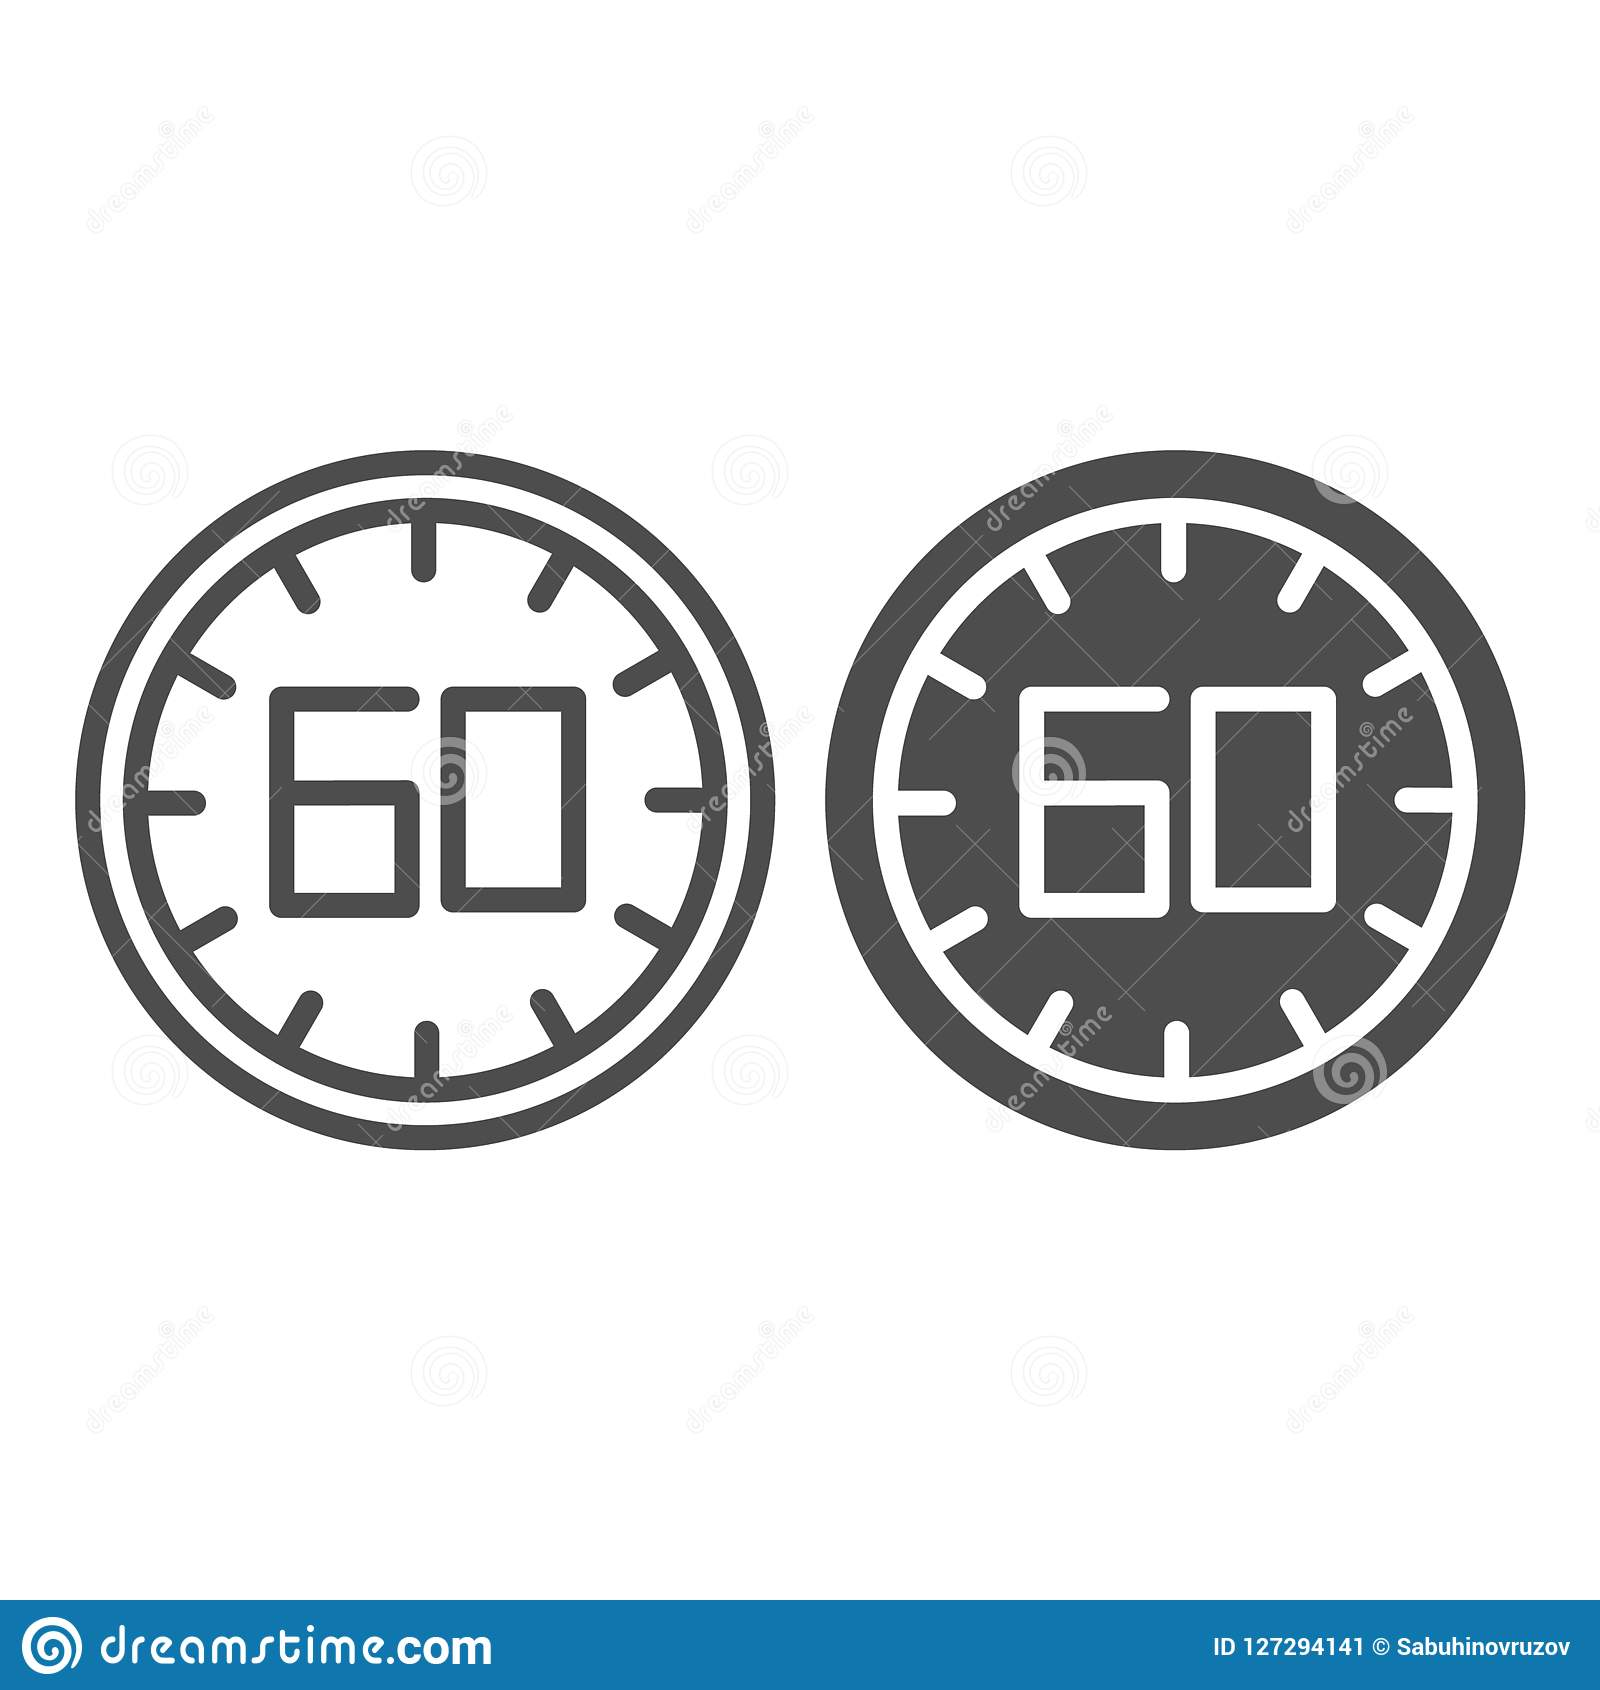 60 seconds line and glyph icon. 60 minutes time vector illustration isolated on white. One hour outline style design